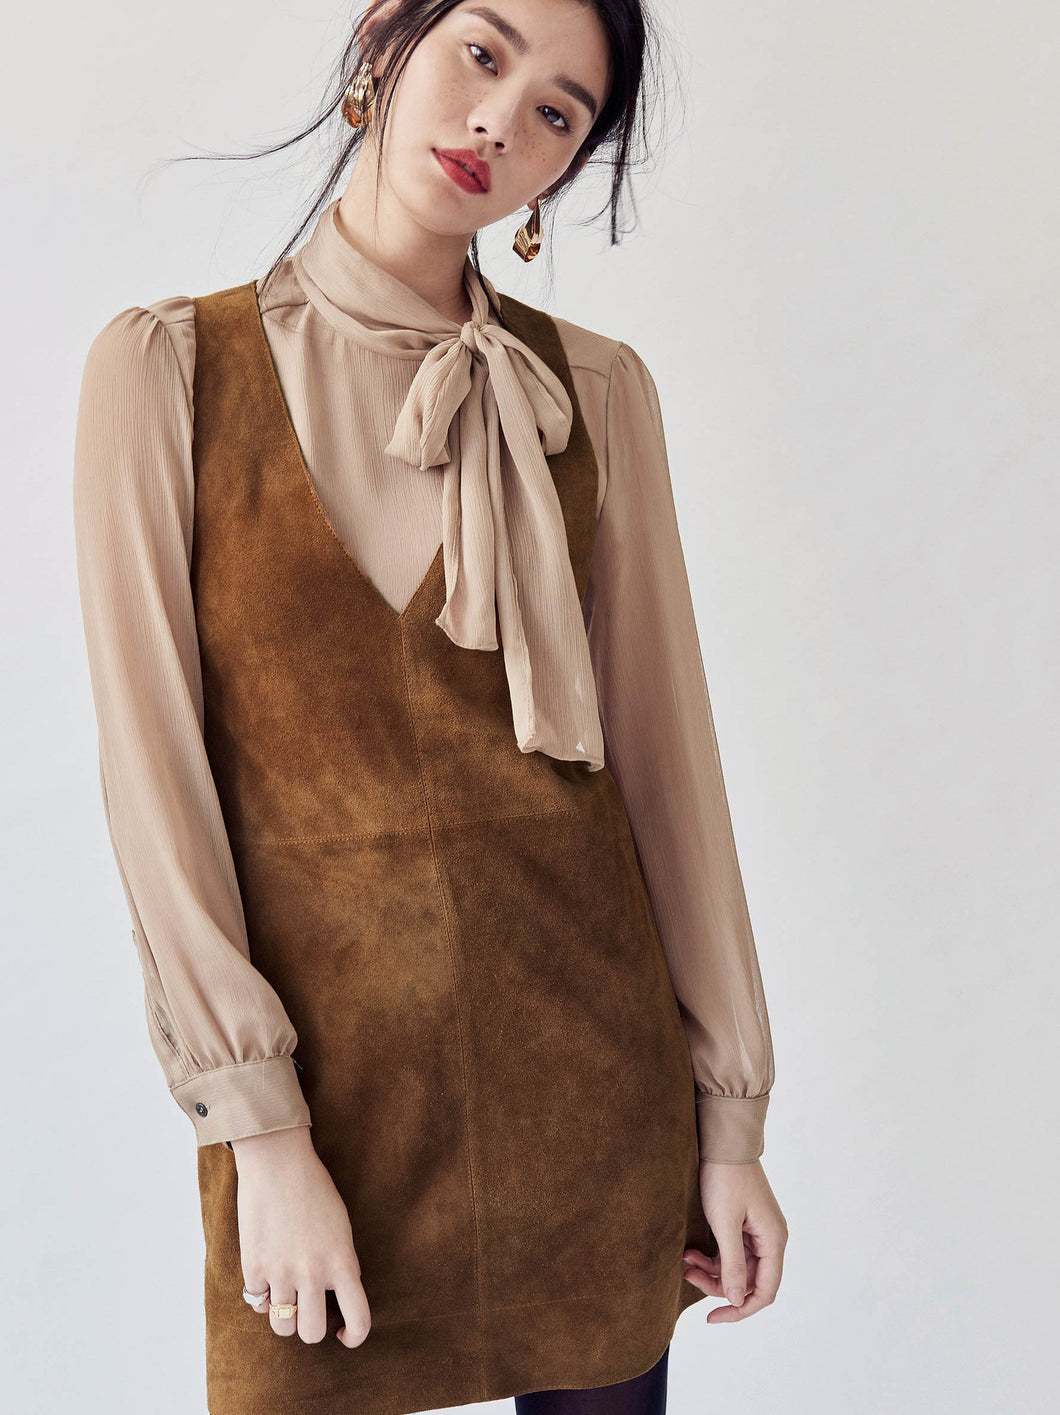 Leather Suede Winter Sleeveless Dress